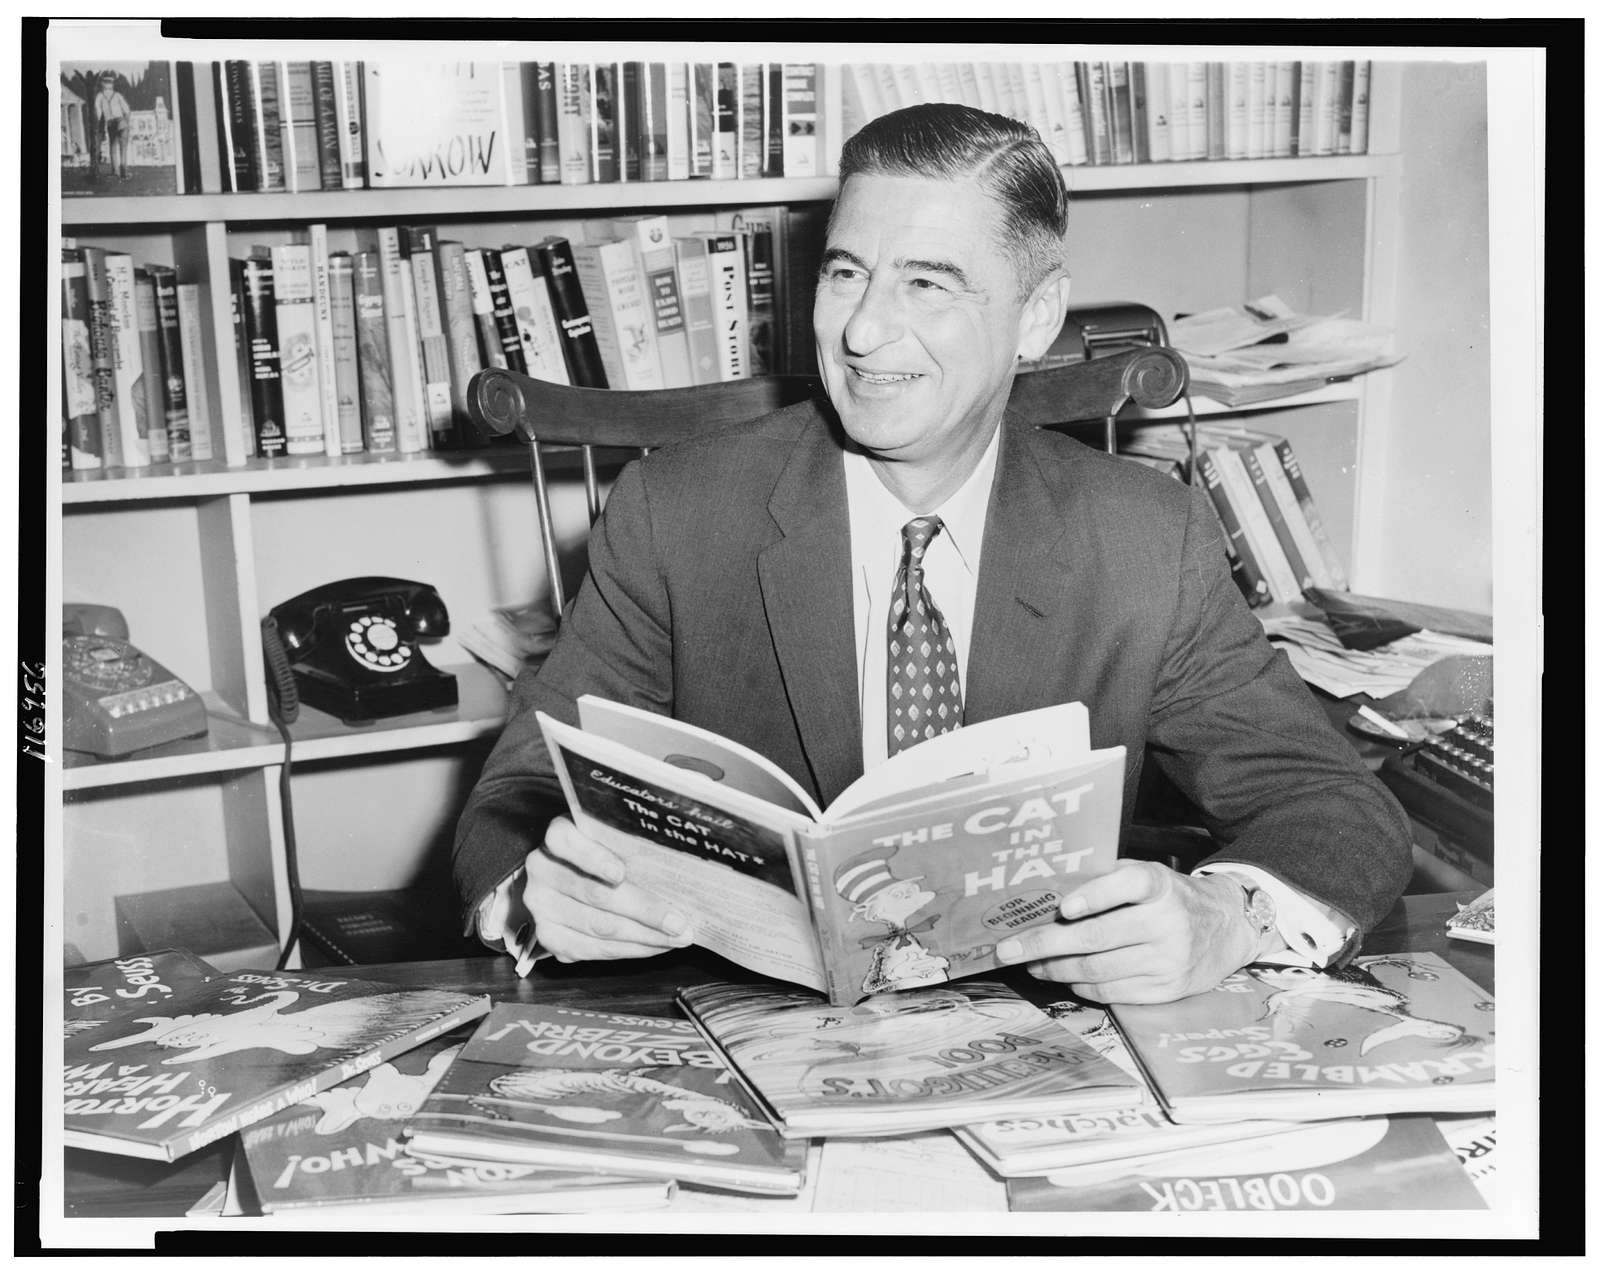 Ted Geisel (Dr. Seuss) half-length portrait, seated at desk covered with his books] / World Telegram & Sun photo by Al Ravenna. - Library Of Congress Public Domain Image